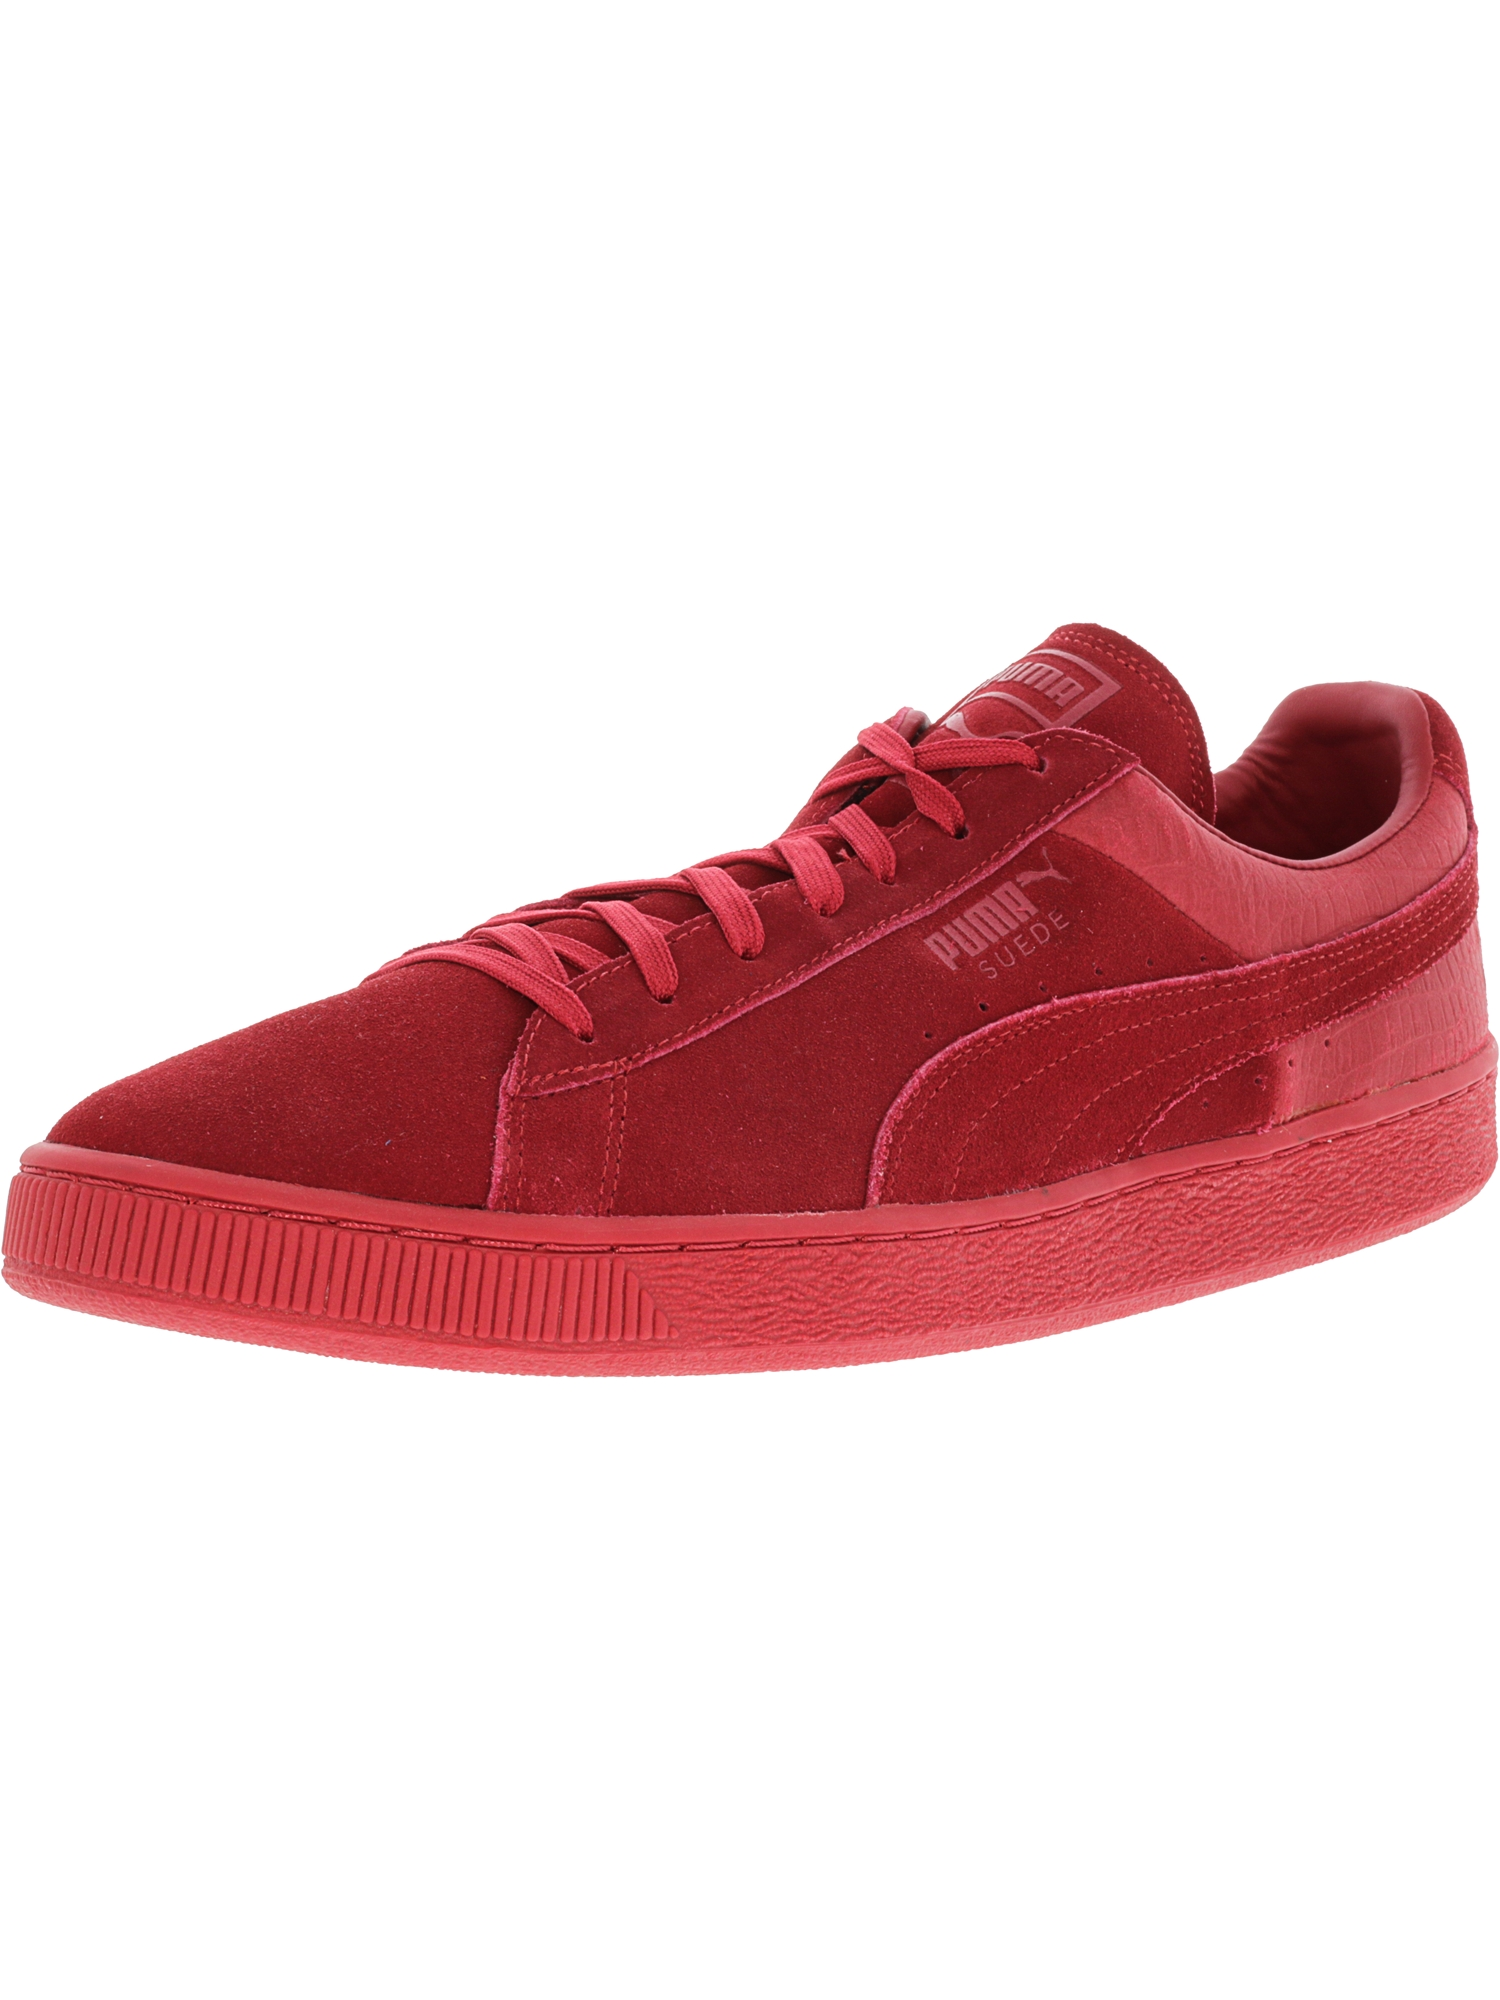 Puma Men's Suede Classic Casual Emboss Barbados Cherry Ankle-High Fashion Sneaker - 13M